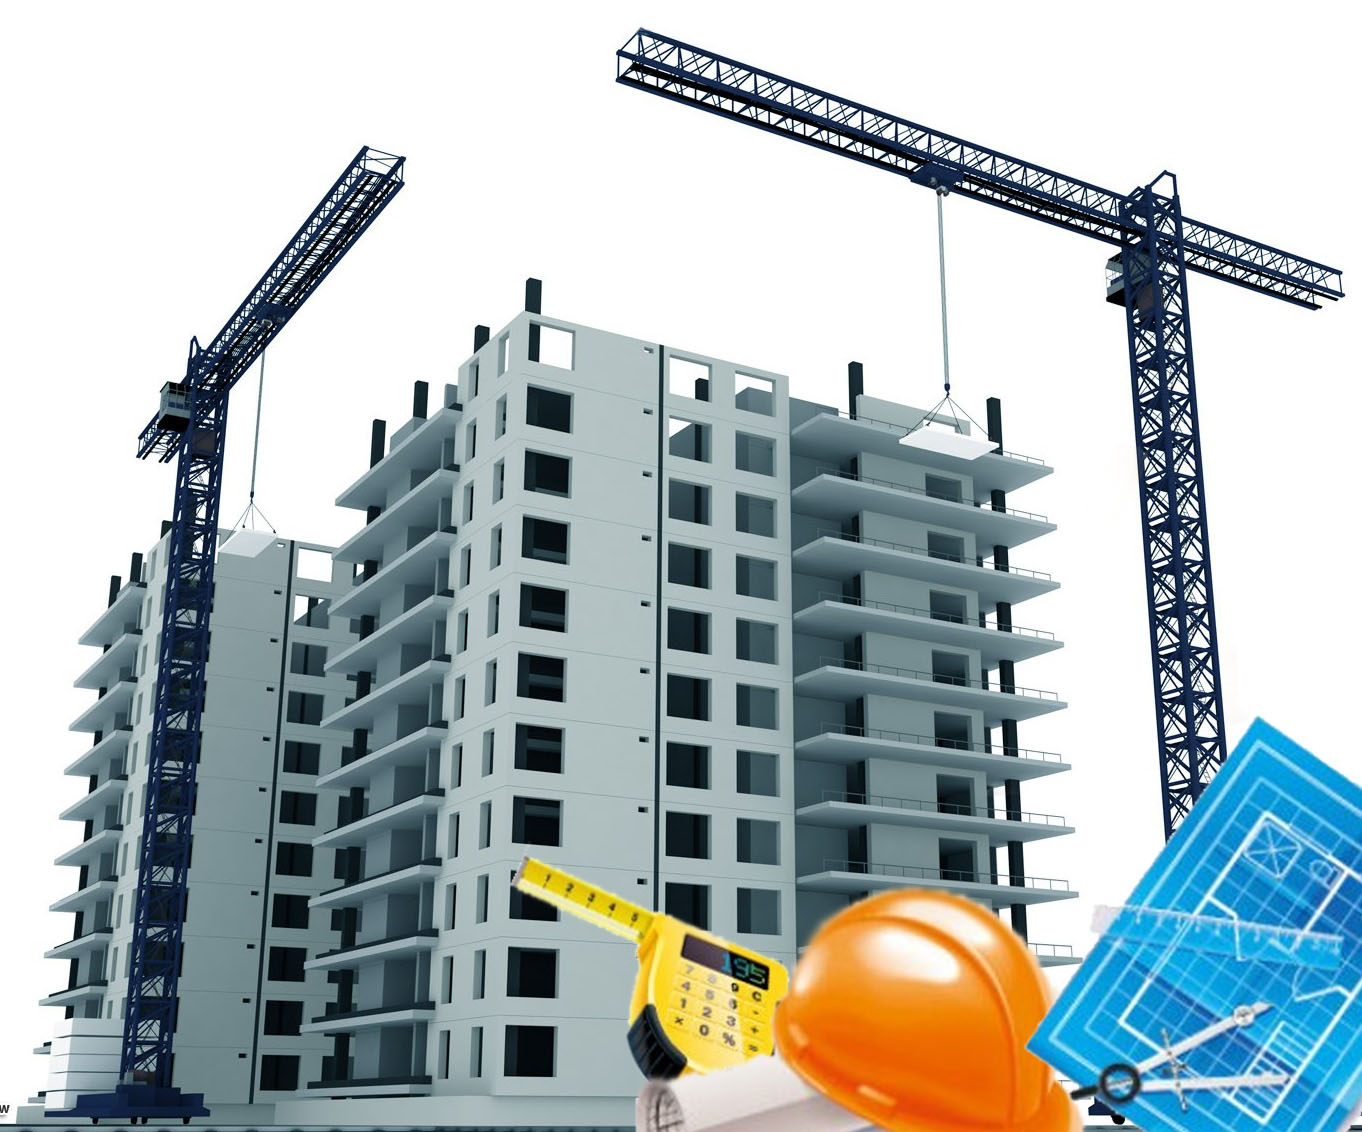 construction building 3d render hkcc ForBuild Best Construction